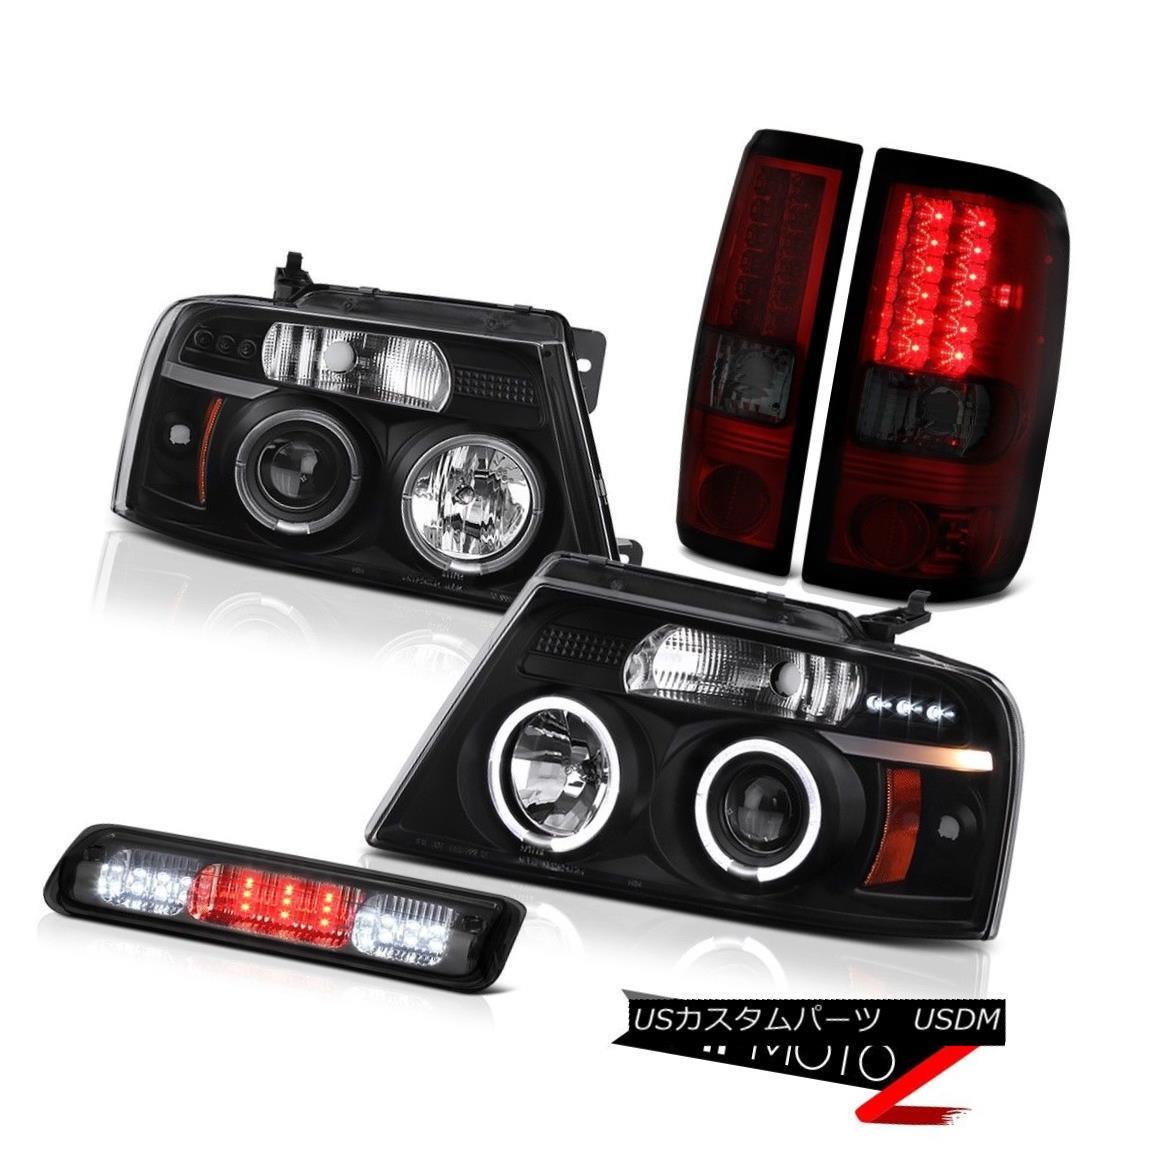 テールライト 04-08 Ford F150 FX4 Roof Cargo Light Headlamps Taillamps Dual Halo